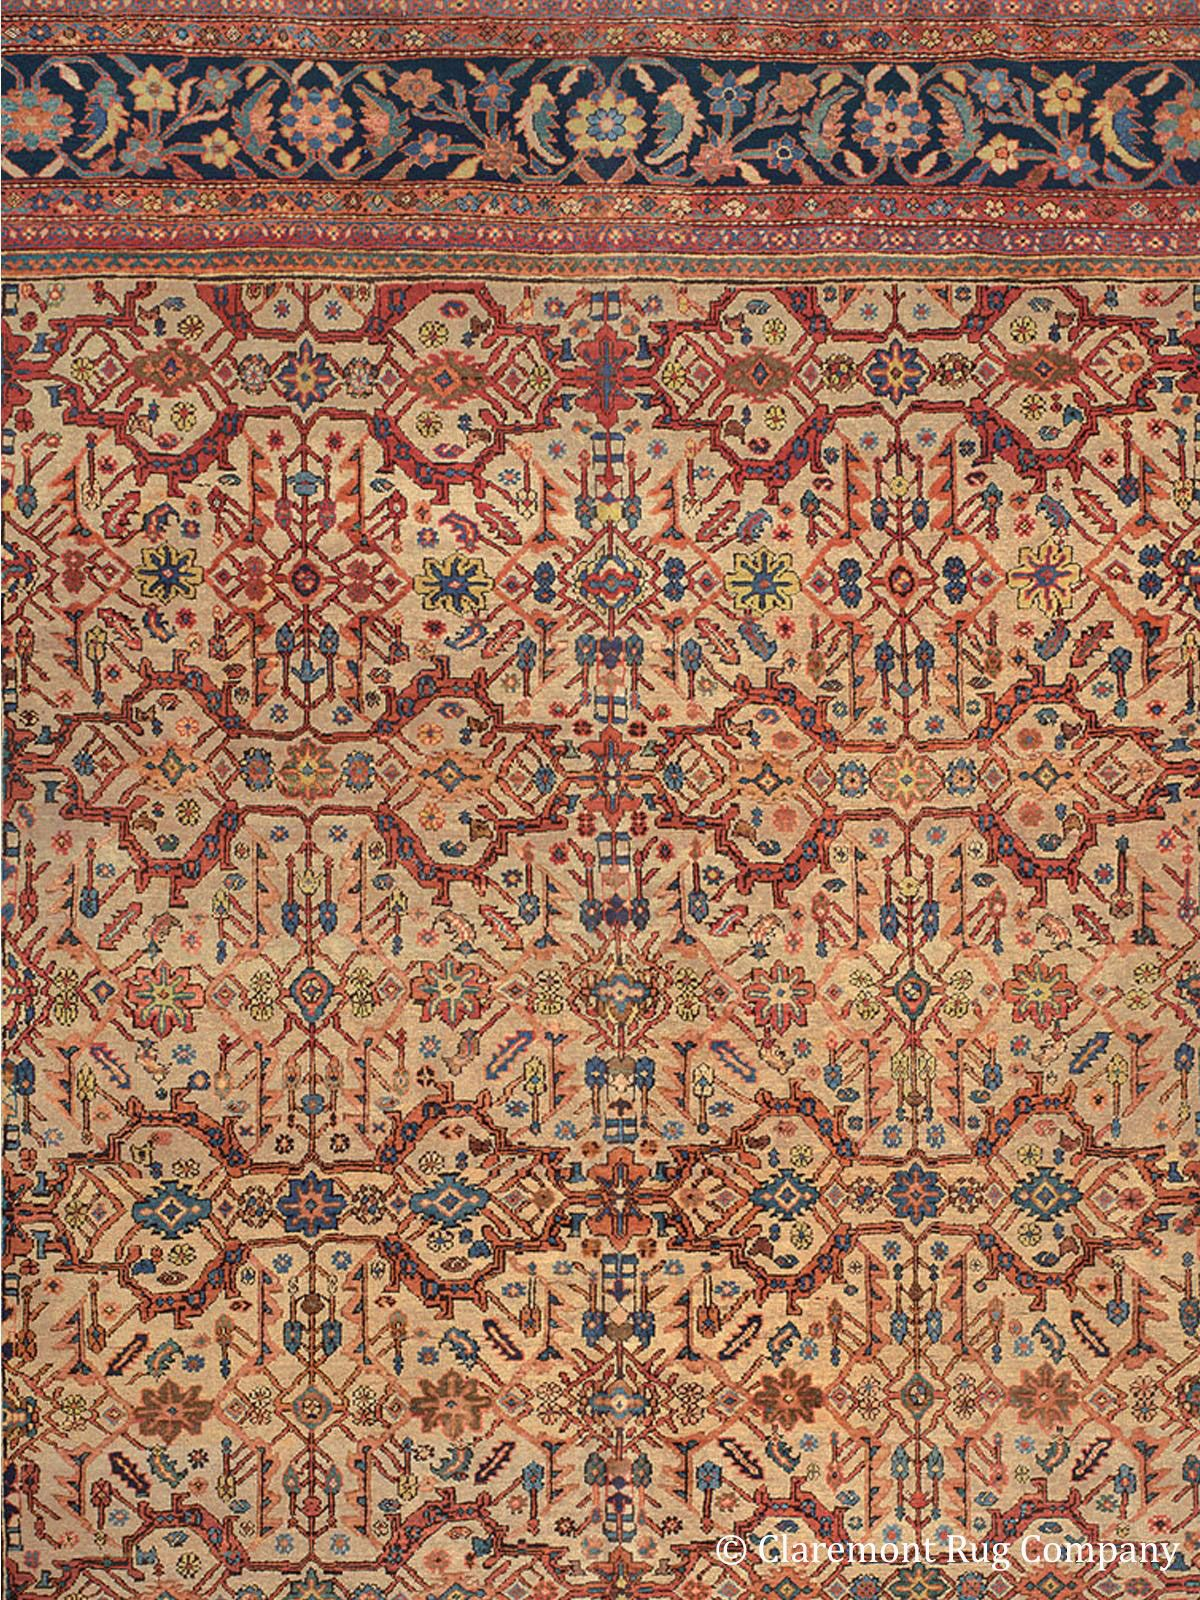 Sultanabad West Central Persian Antique Rug 13 10 X 20 3 Circa 1900 Claremont Rug Company Oriental Persian Rugs Rugs Antique Oriental Rugs